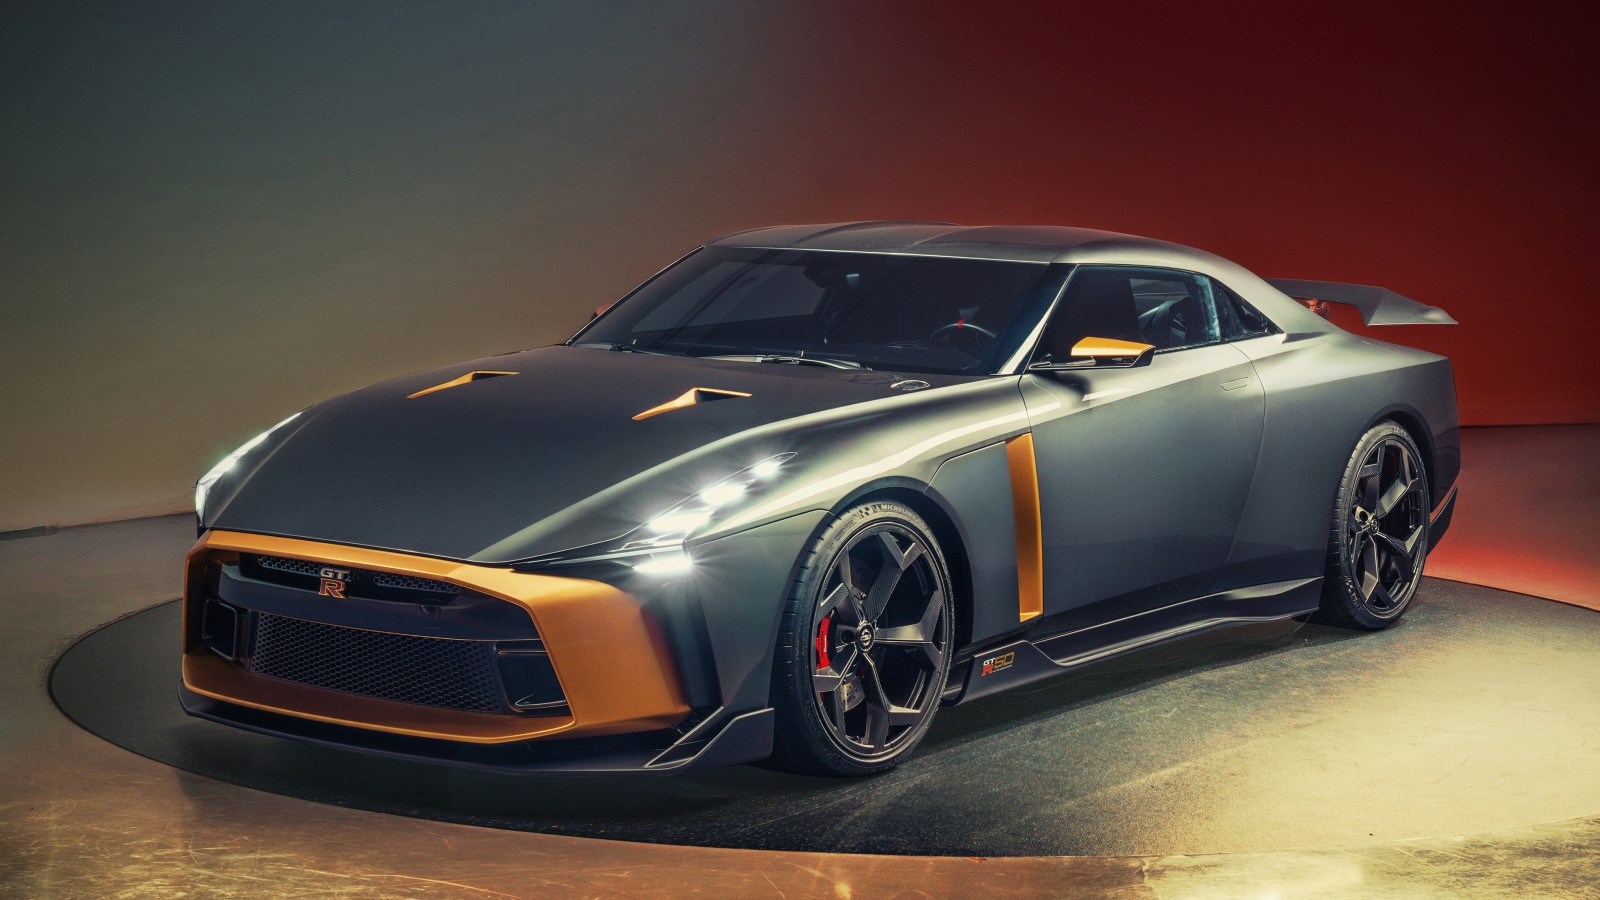 Nissan GT-R50 Concept 2018 4K Wallpaper | HD Car ...